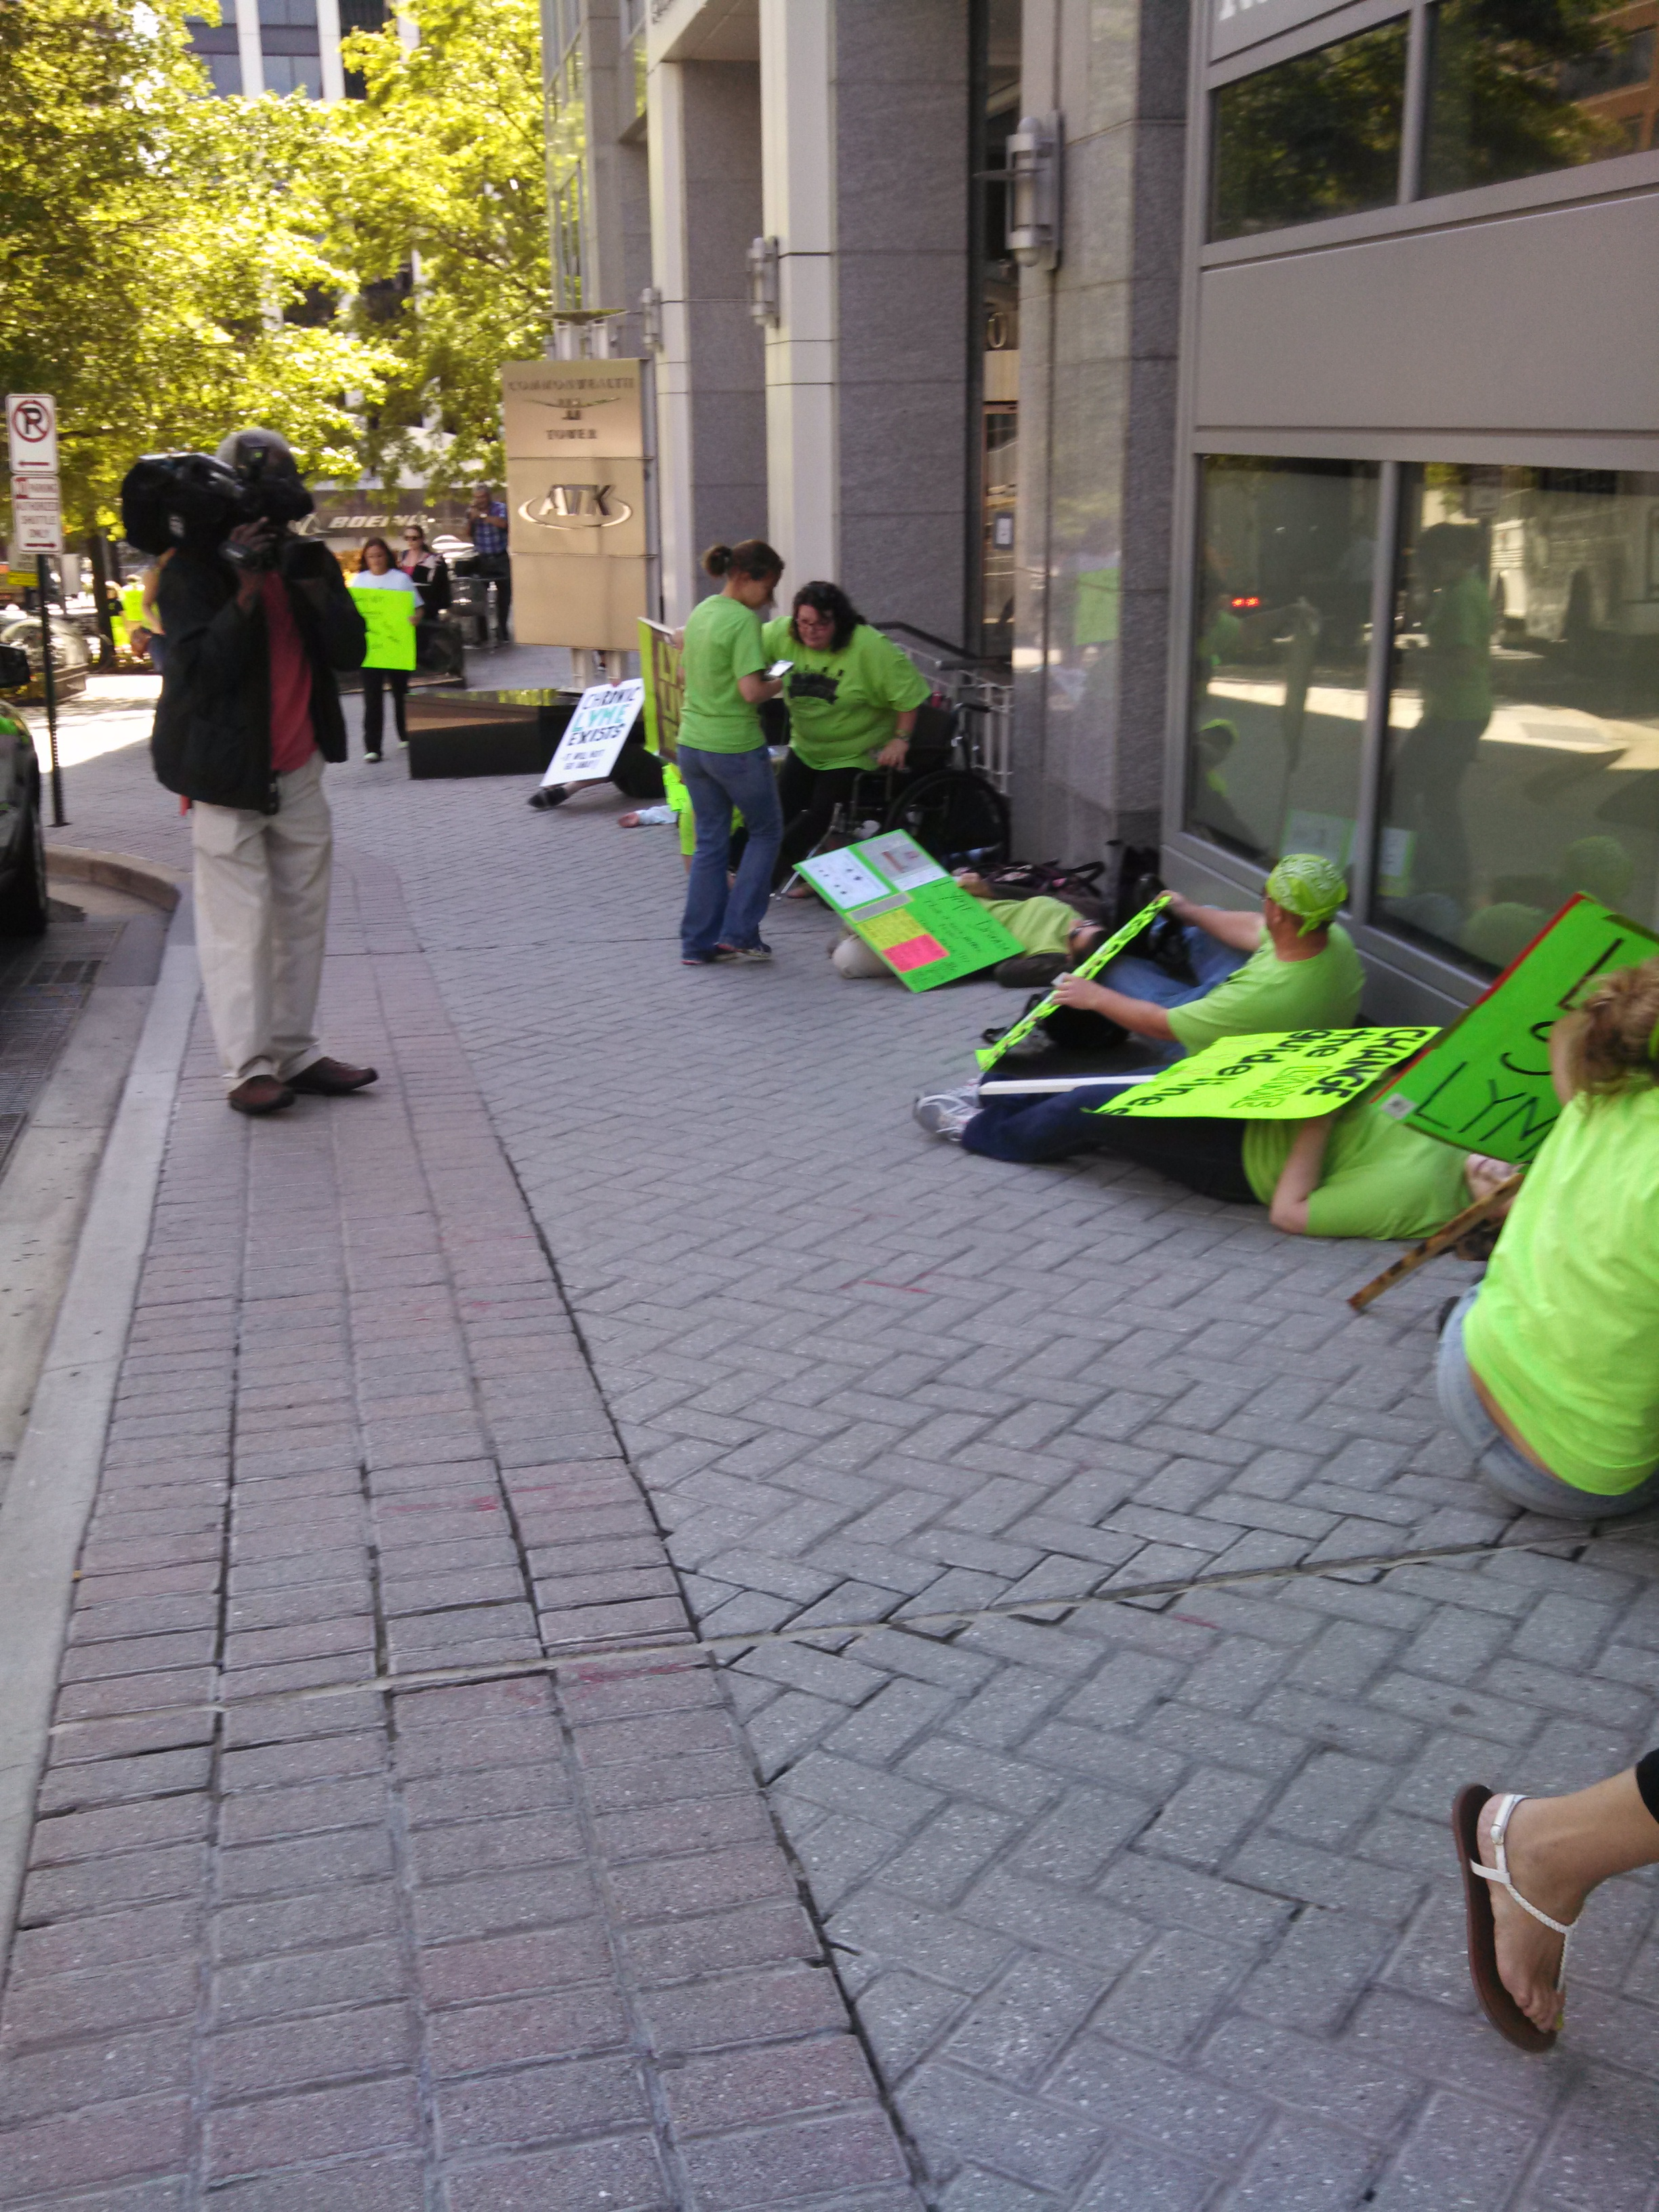 Lyme patients being videotaped by NBC during the Flash Die In in front of the IDSA Headquarters in Arlington, Va